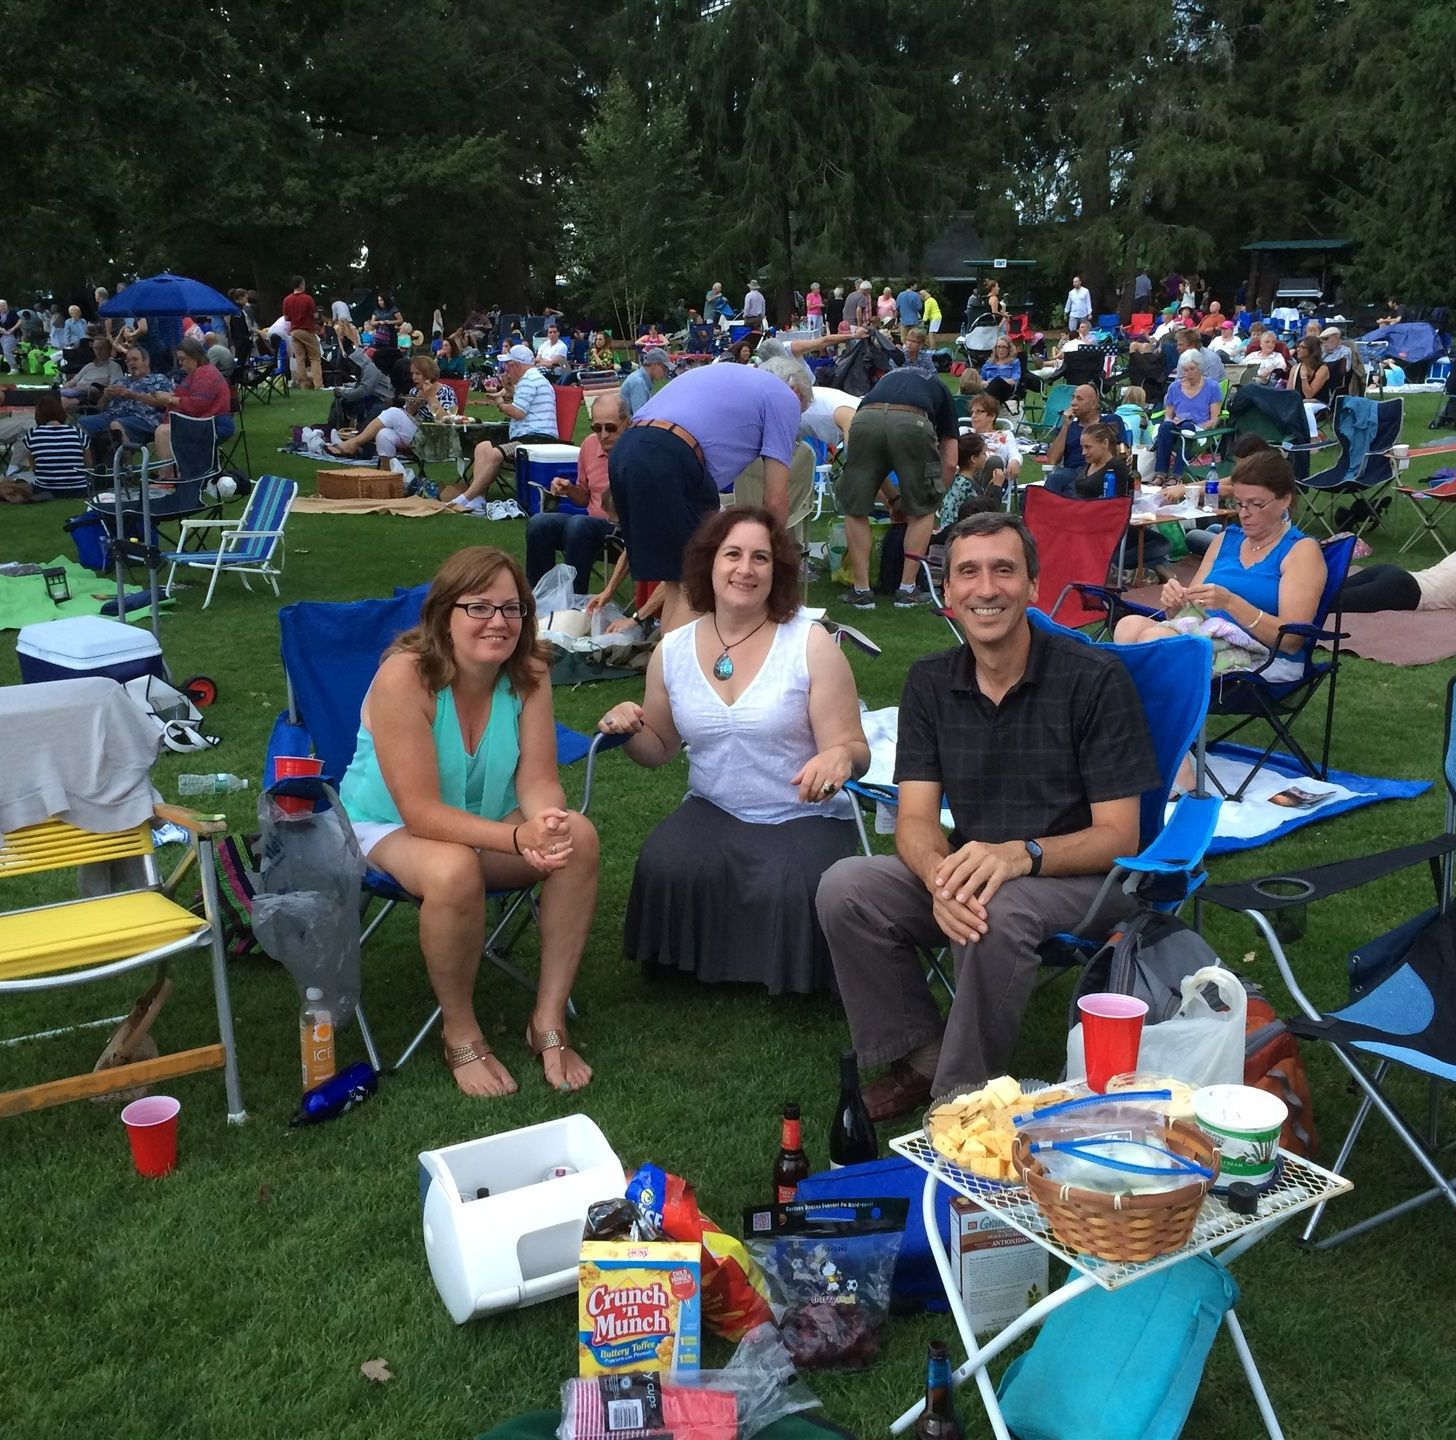 A photo of three smiling people picnicking on the lawn at Tanglewood.  Many lawn chairs, small tables, and blankets with people can be seen in the background.